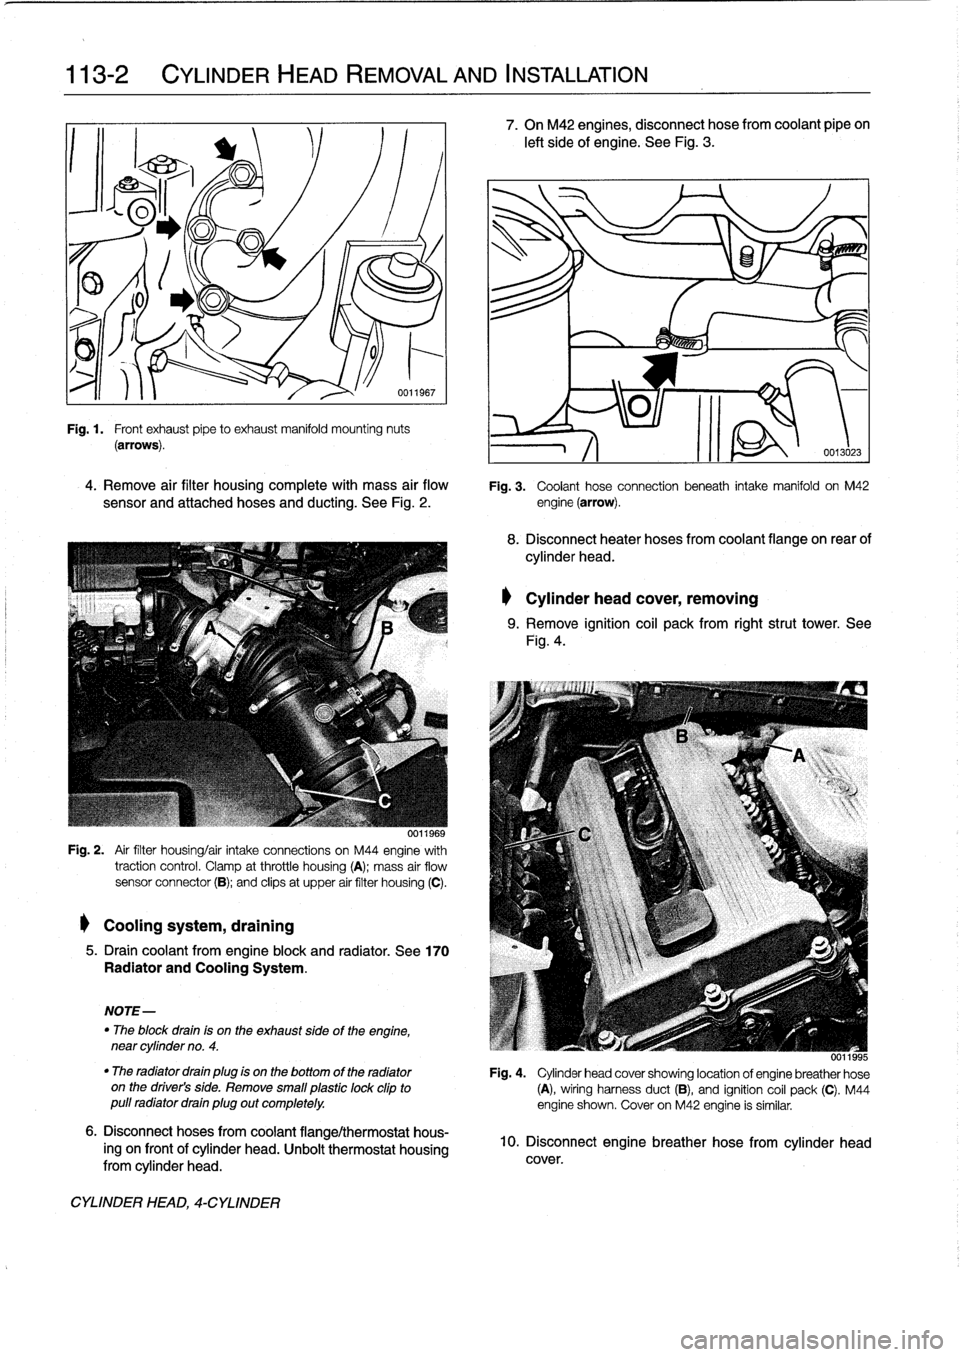 Traction Control Bmw 325i 1994 E36 Workshop Manual M50 Vanos Wiring Diagram